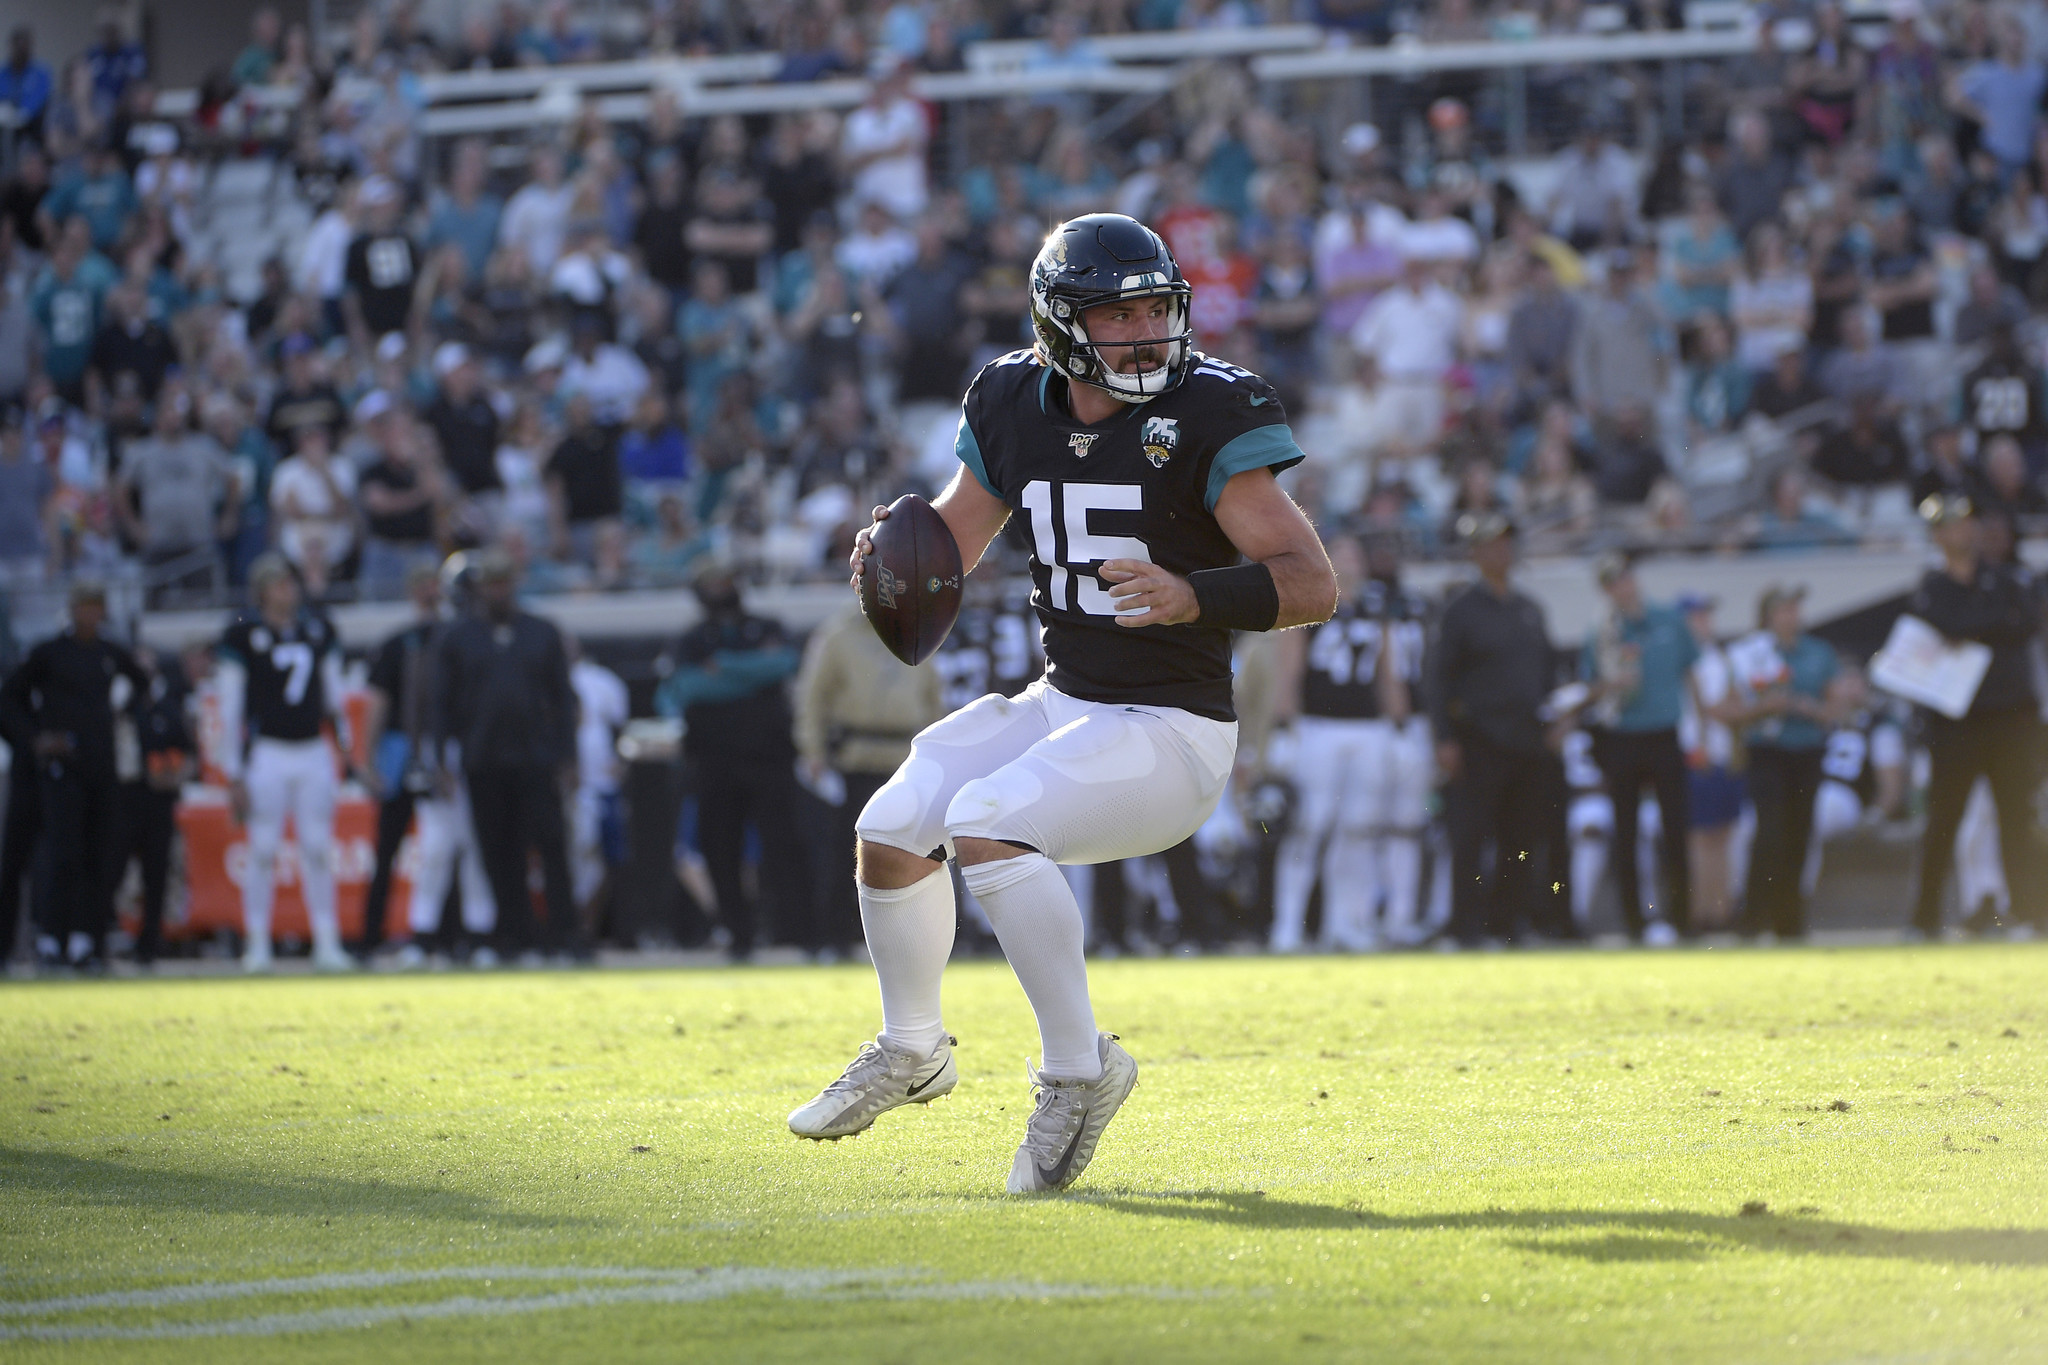 Minshew Mania lives on: Jaguars name rookie QB Gardner Minshew as starter against Chargers